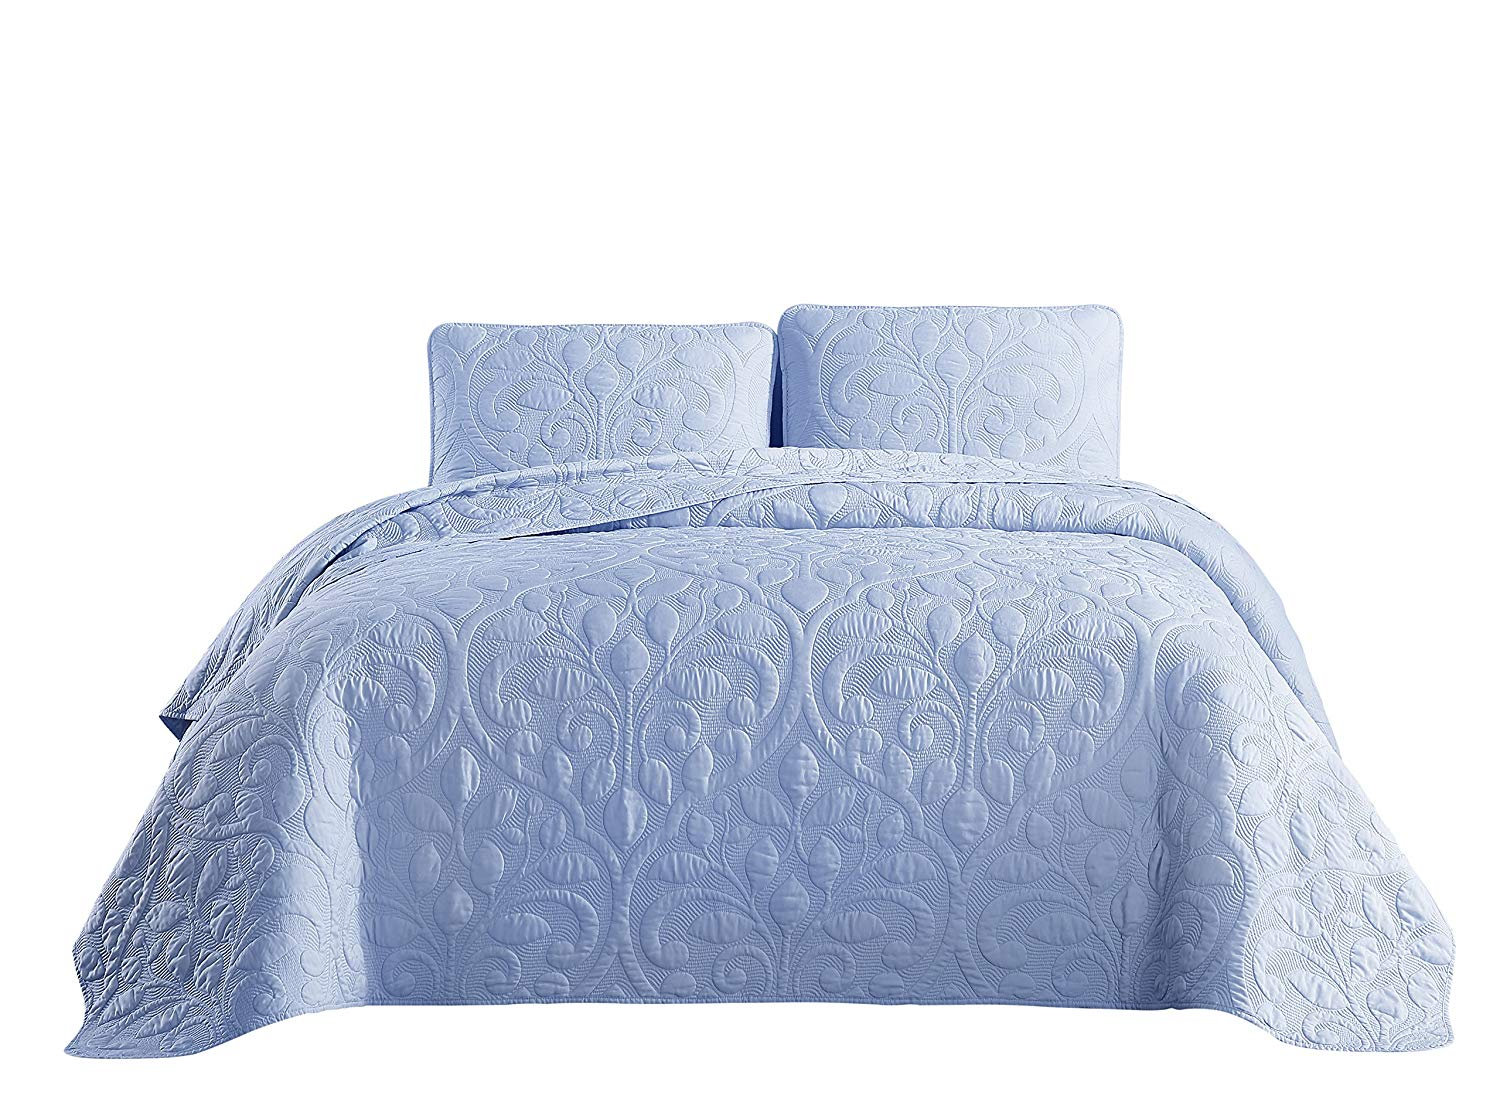 SuperBeddings Rayon Bamboo Pre-Washed Embroidered Coverlet Set